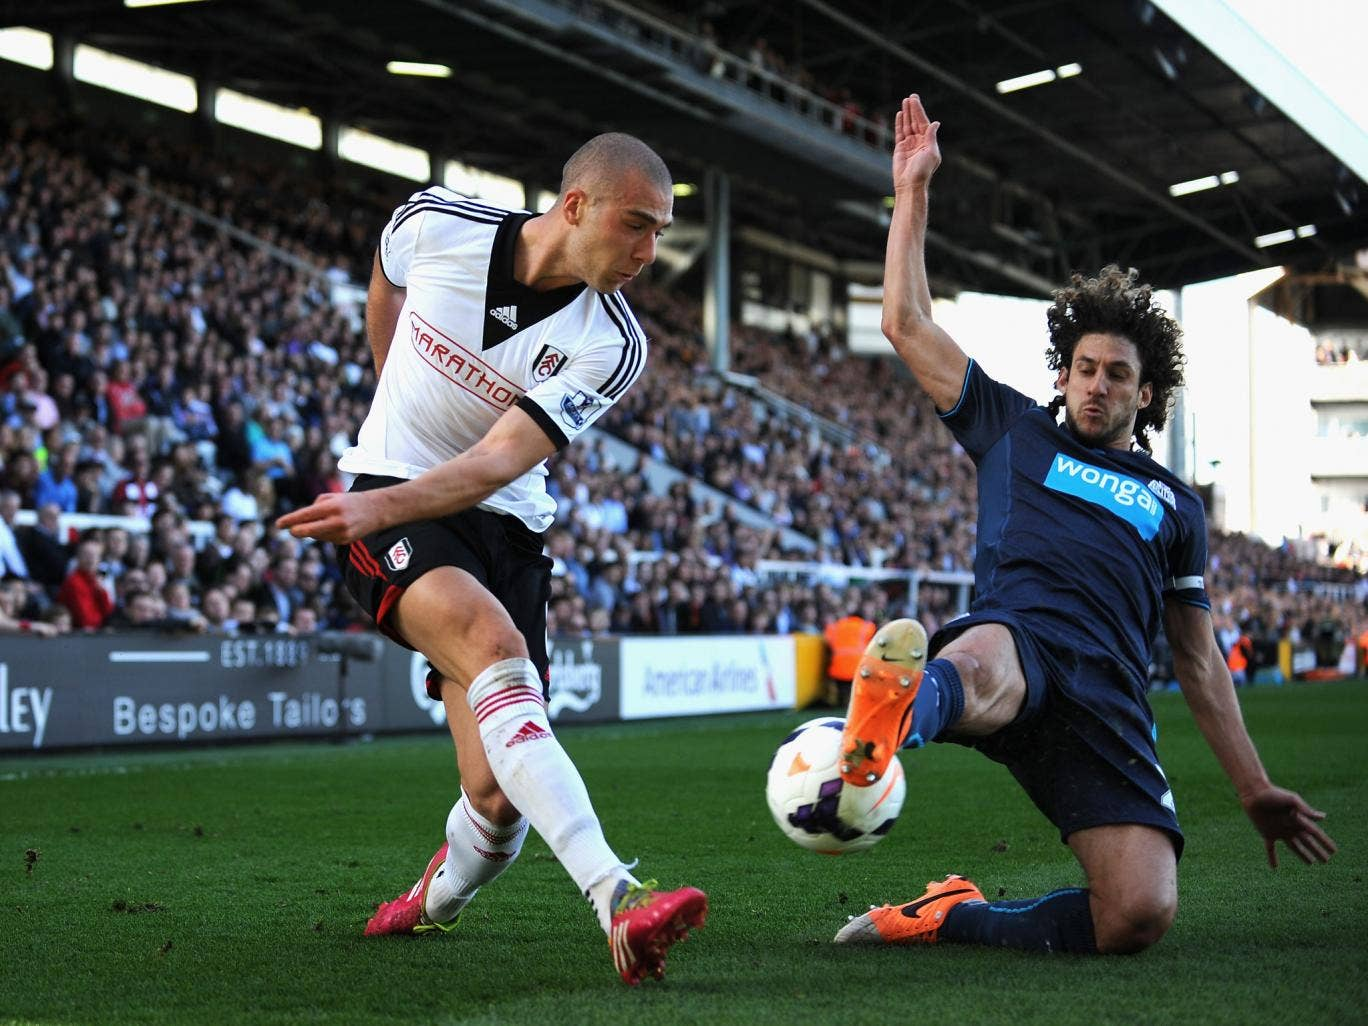 Pajtim Kasami of Fulham tackled by Fabricio Coloccini of Newcastle United